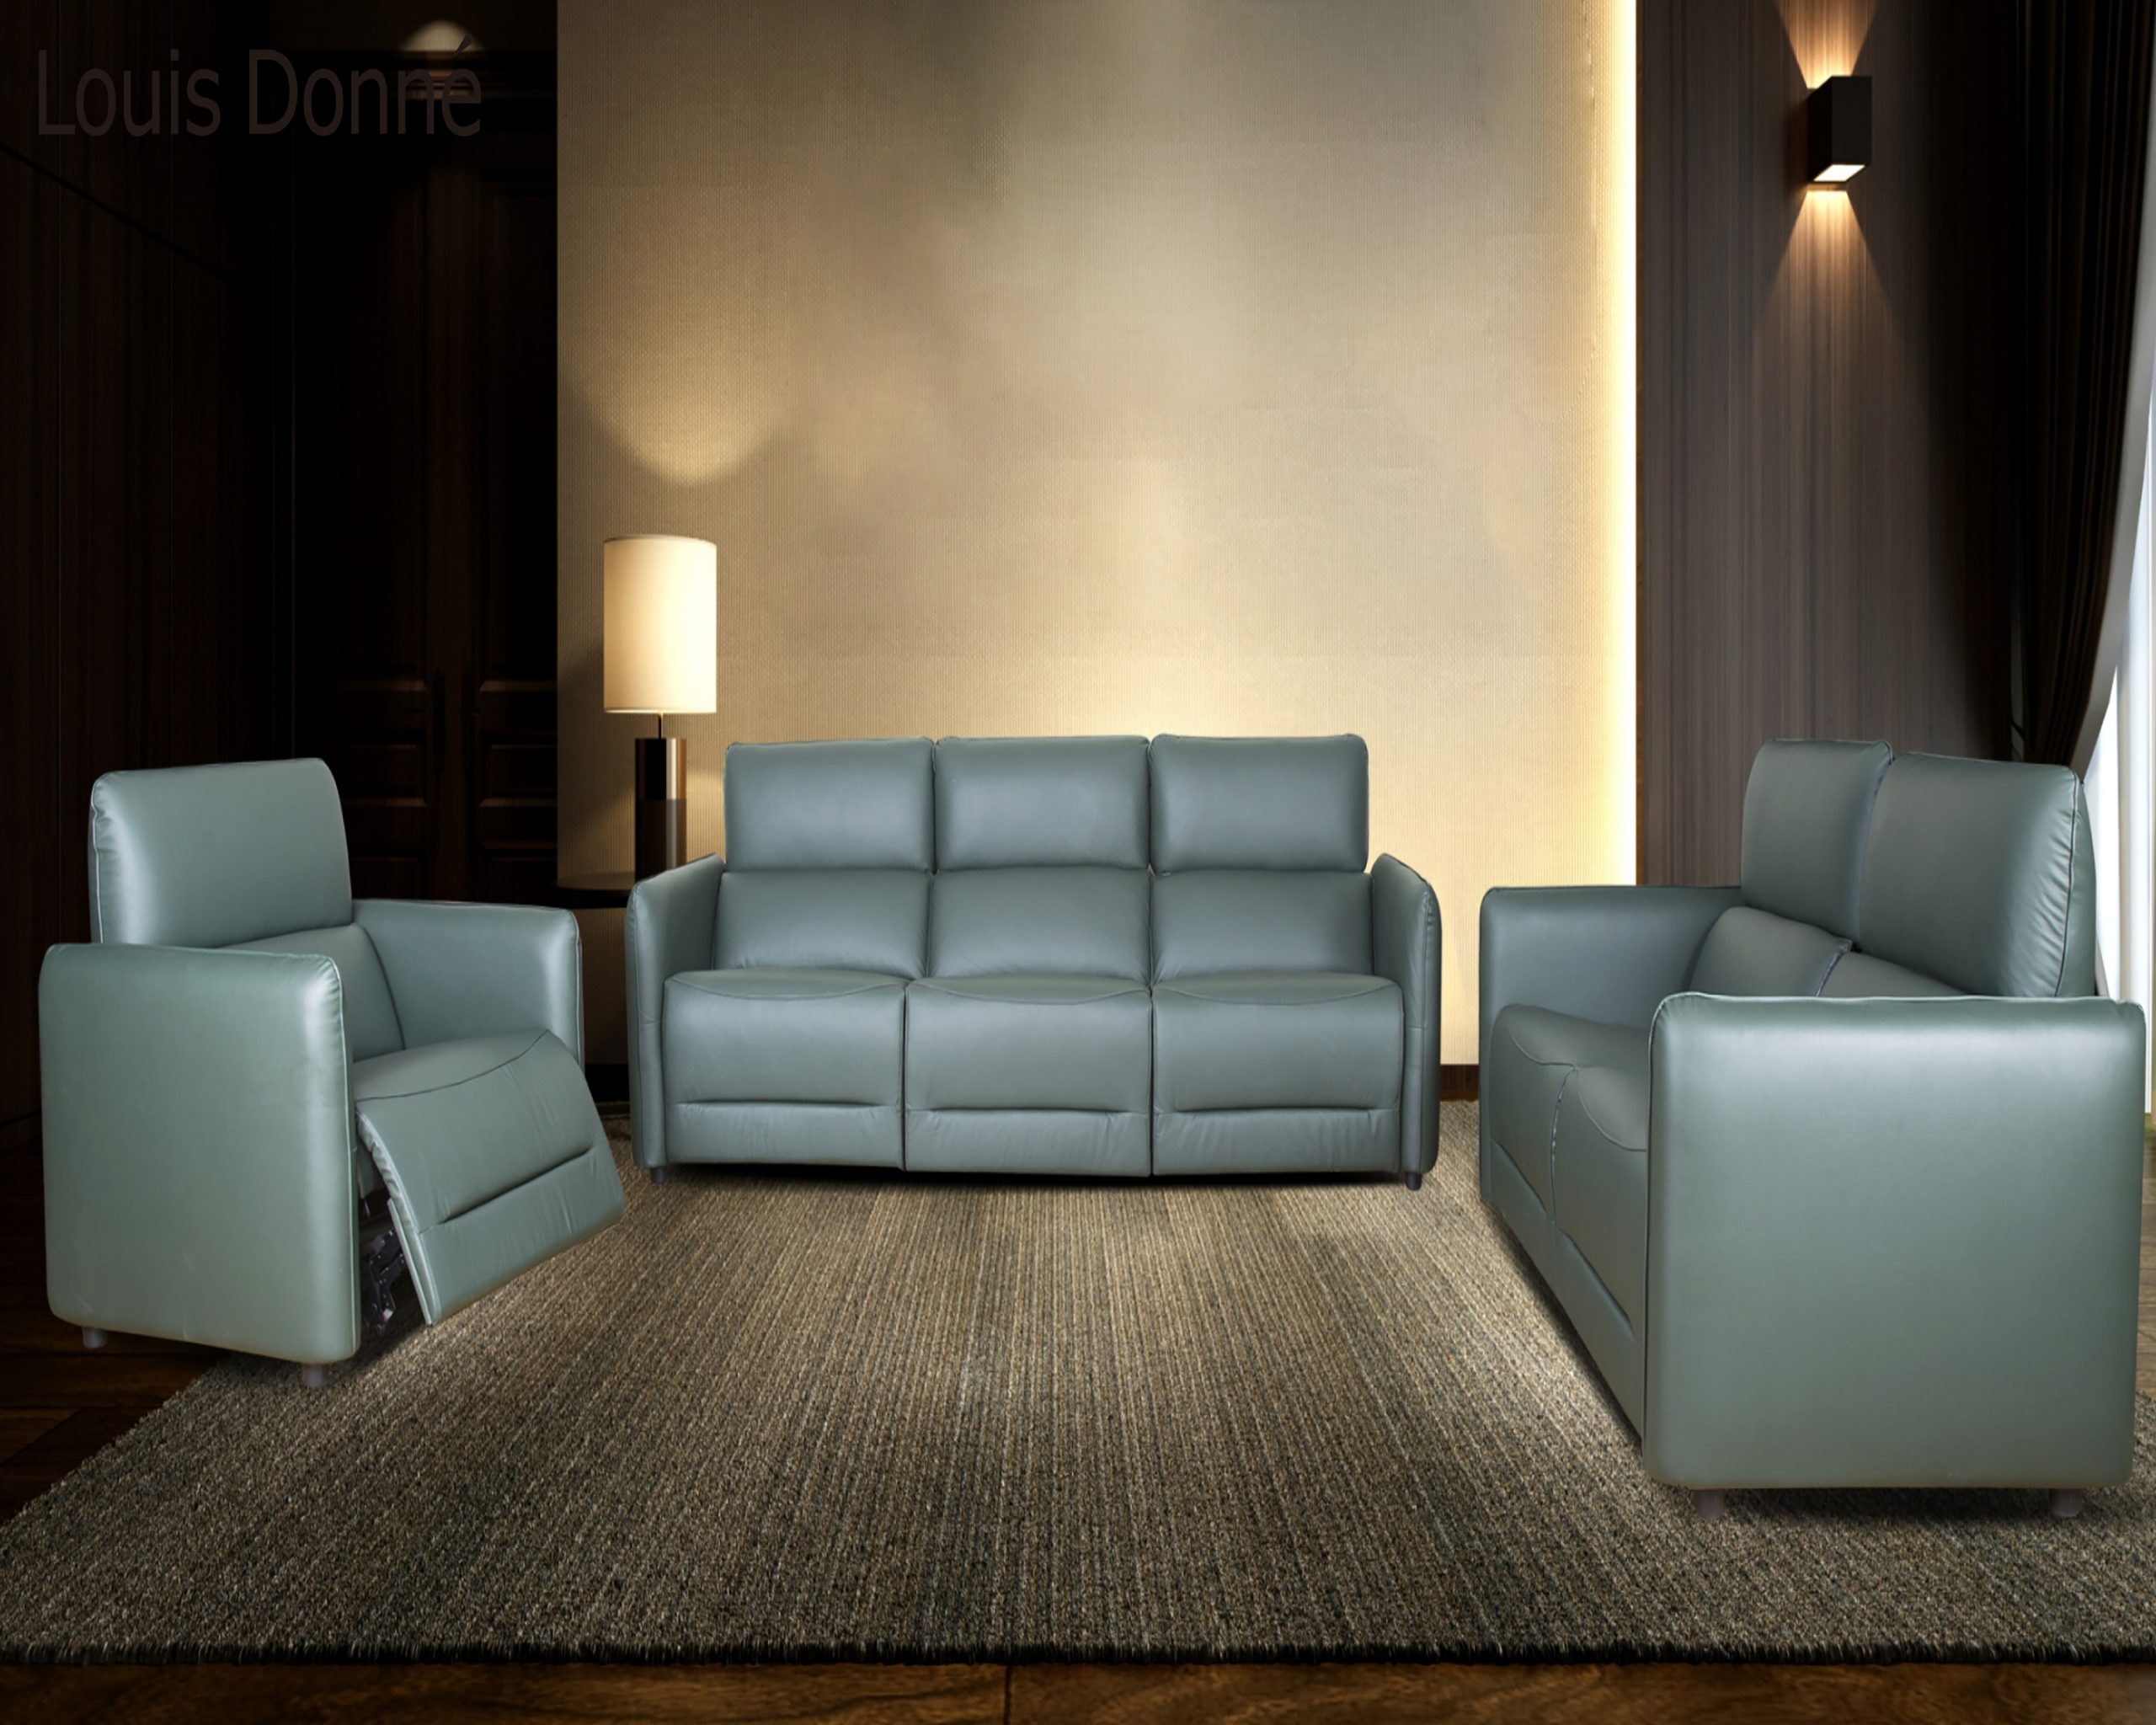 Home fabric sofa placement direction and feng shui (upper)